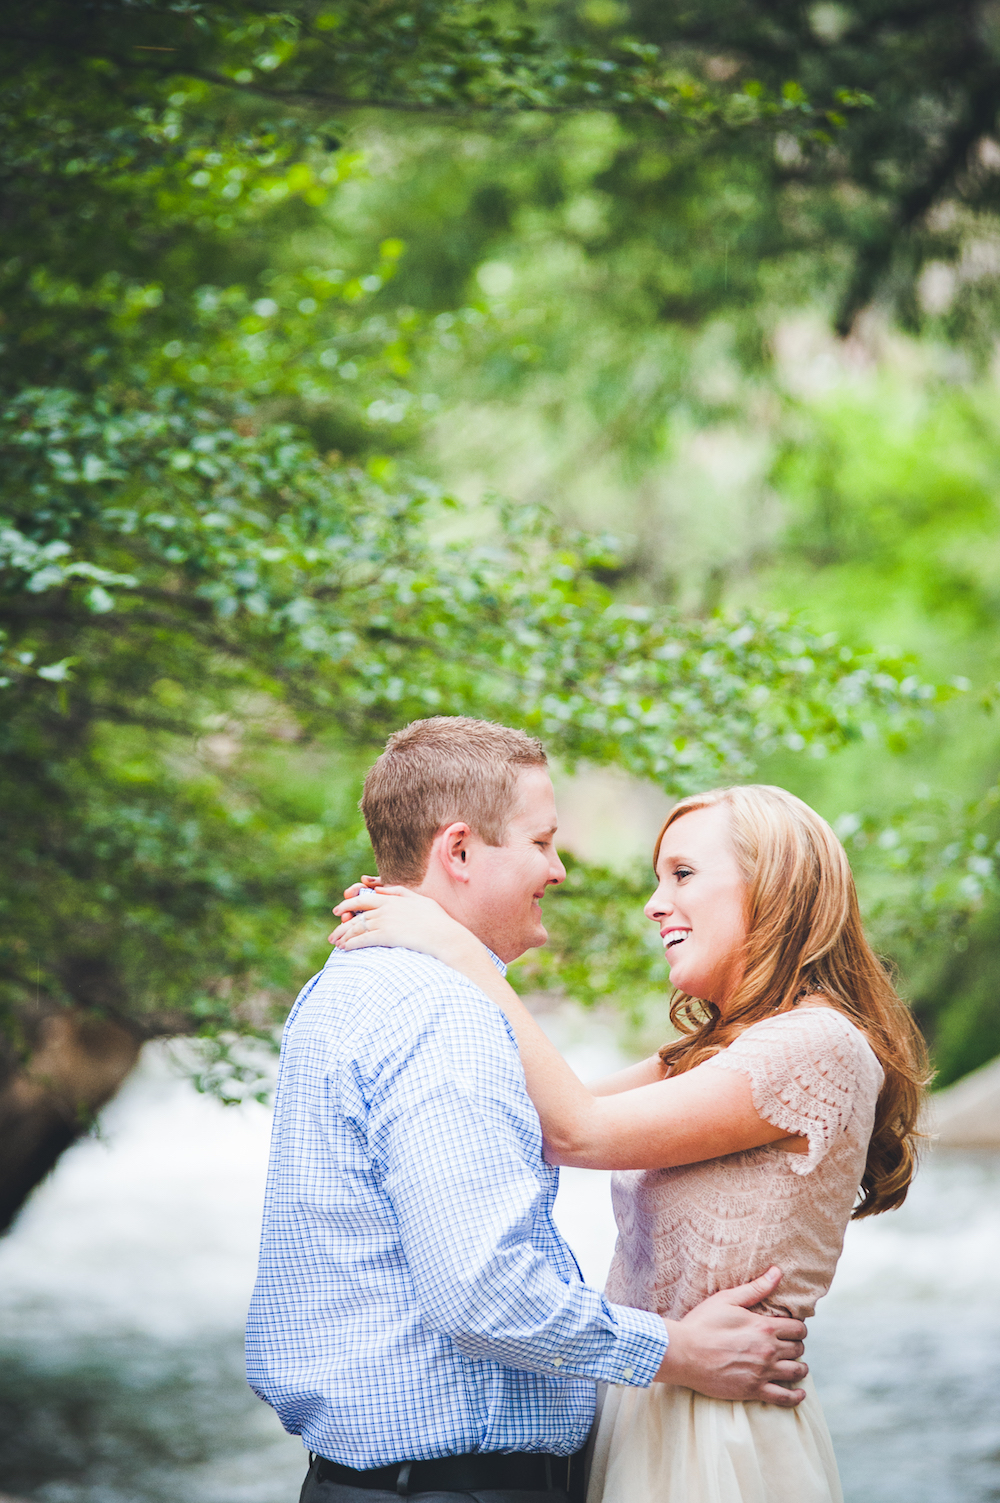 ck-Colorado-Engagement-Photography-0011.jpg